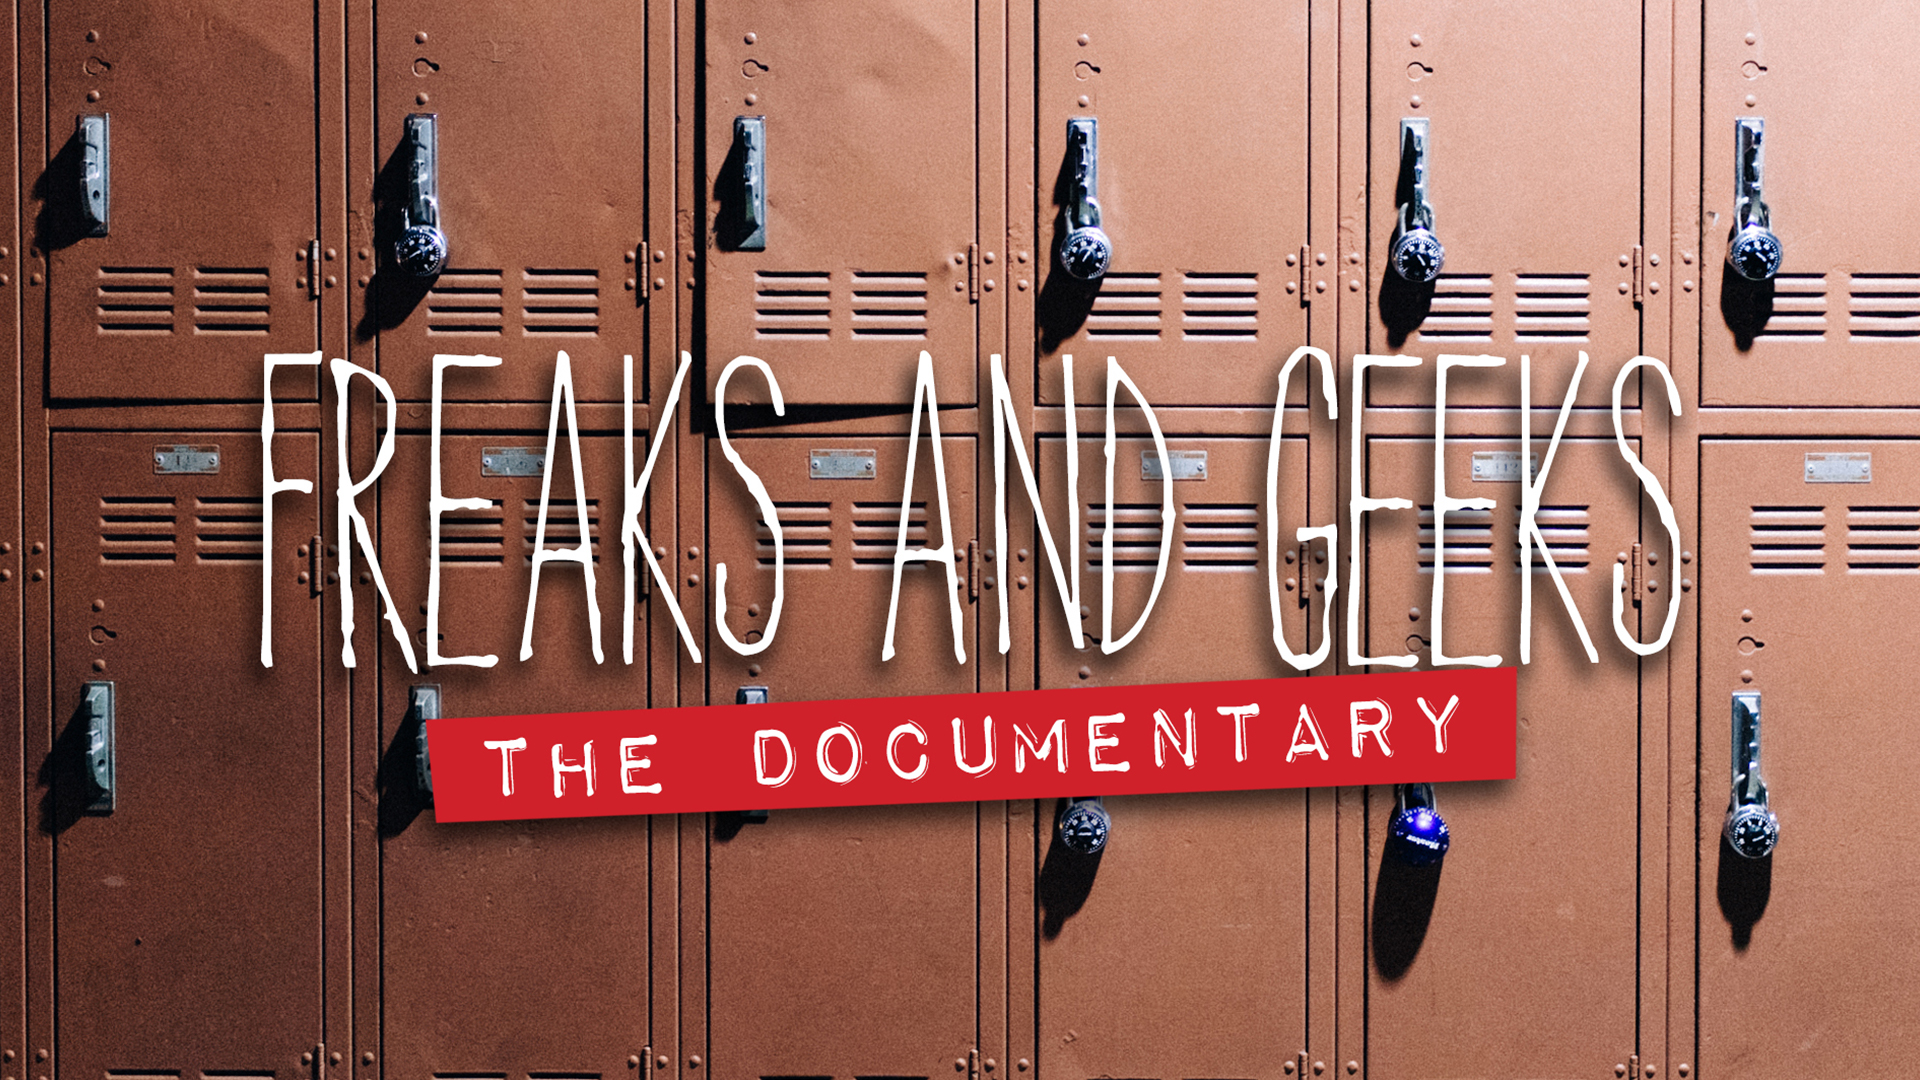 FREAKS AND GEEKS - THE DOCUMENTARY